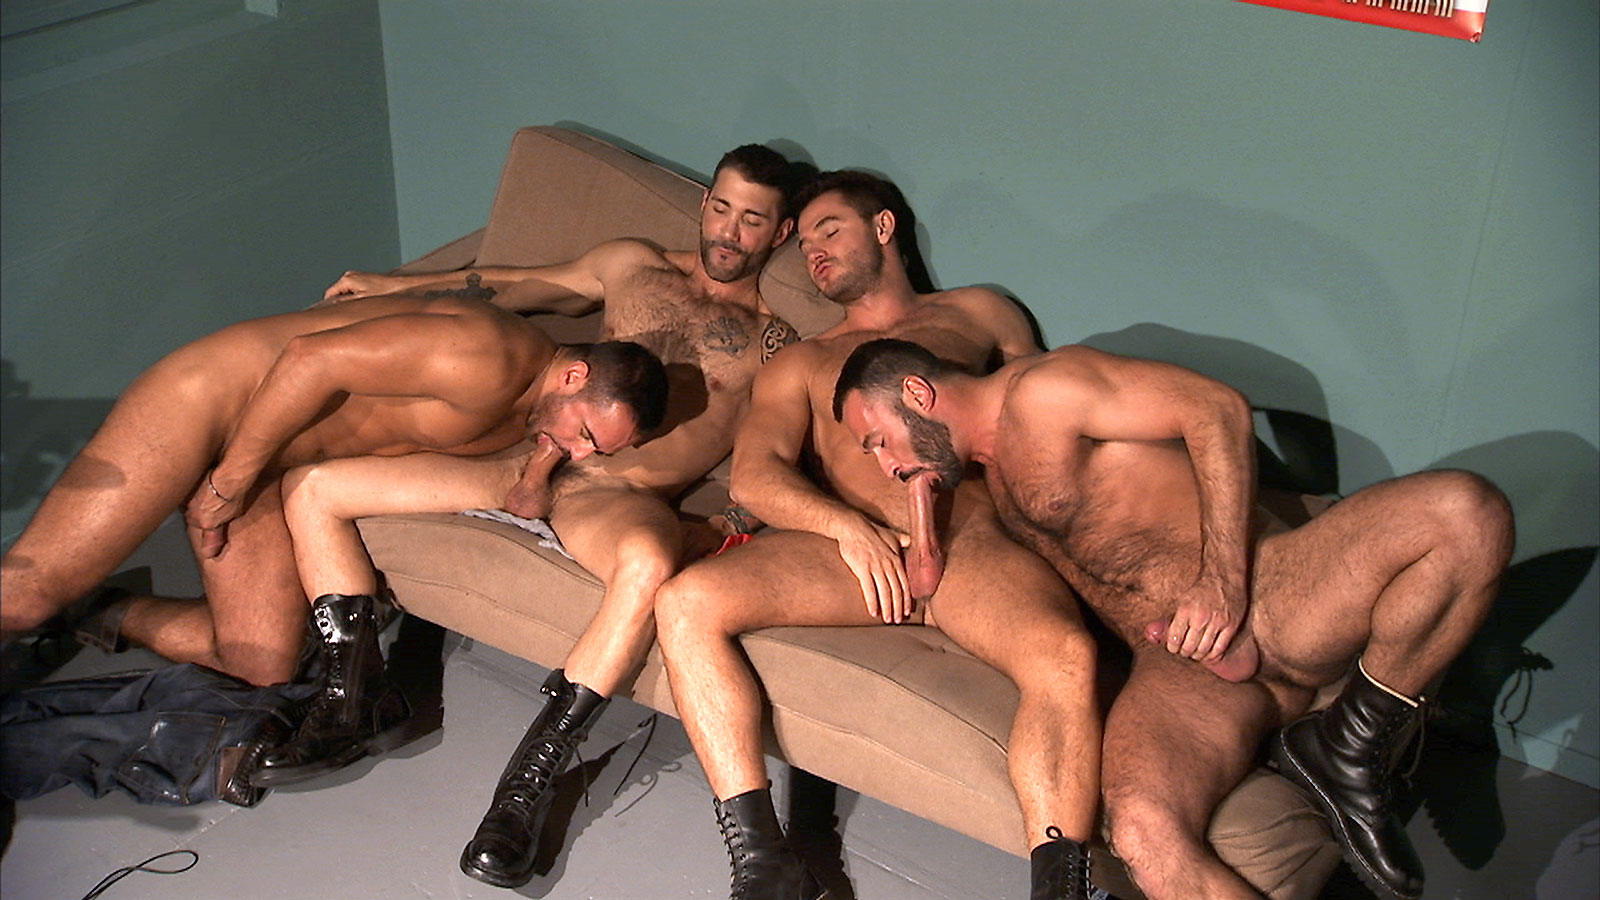 TitanMen Exclusives Jessy Ares and Marco Wilson with Junior Stellano and Wilfried Knight - Command Performance - Scene 3